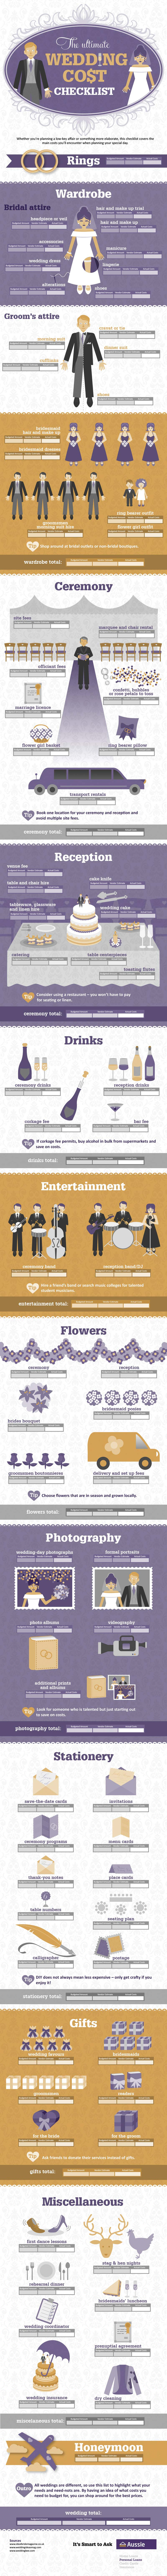 Wedding Budget Template-Infographic